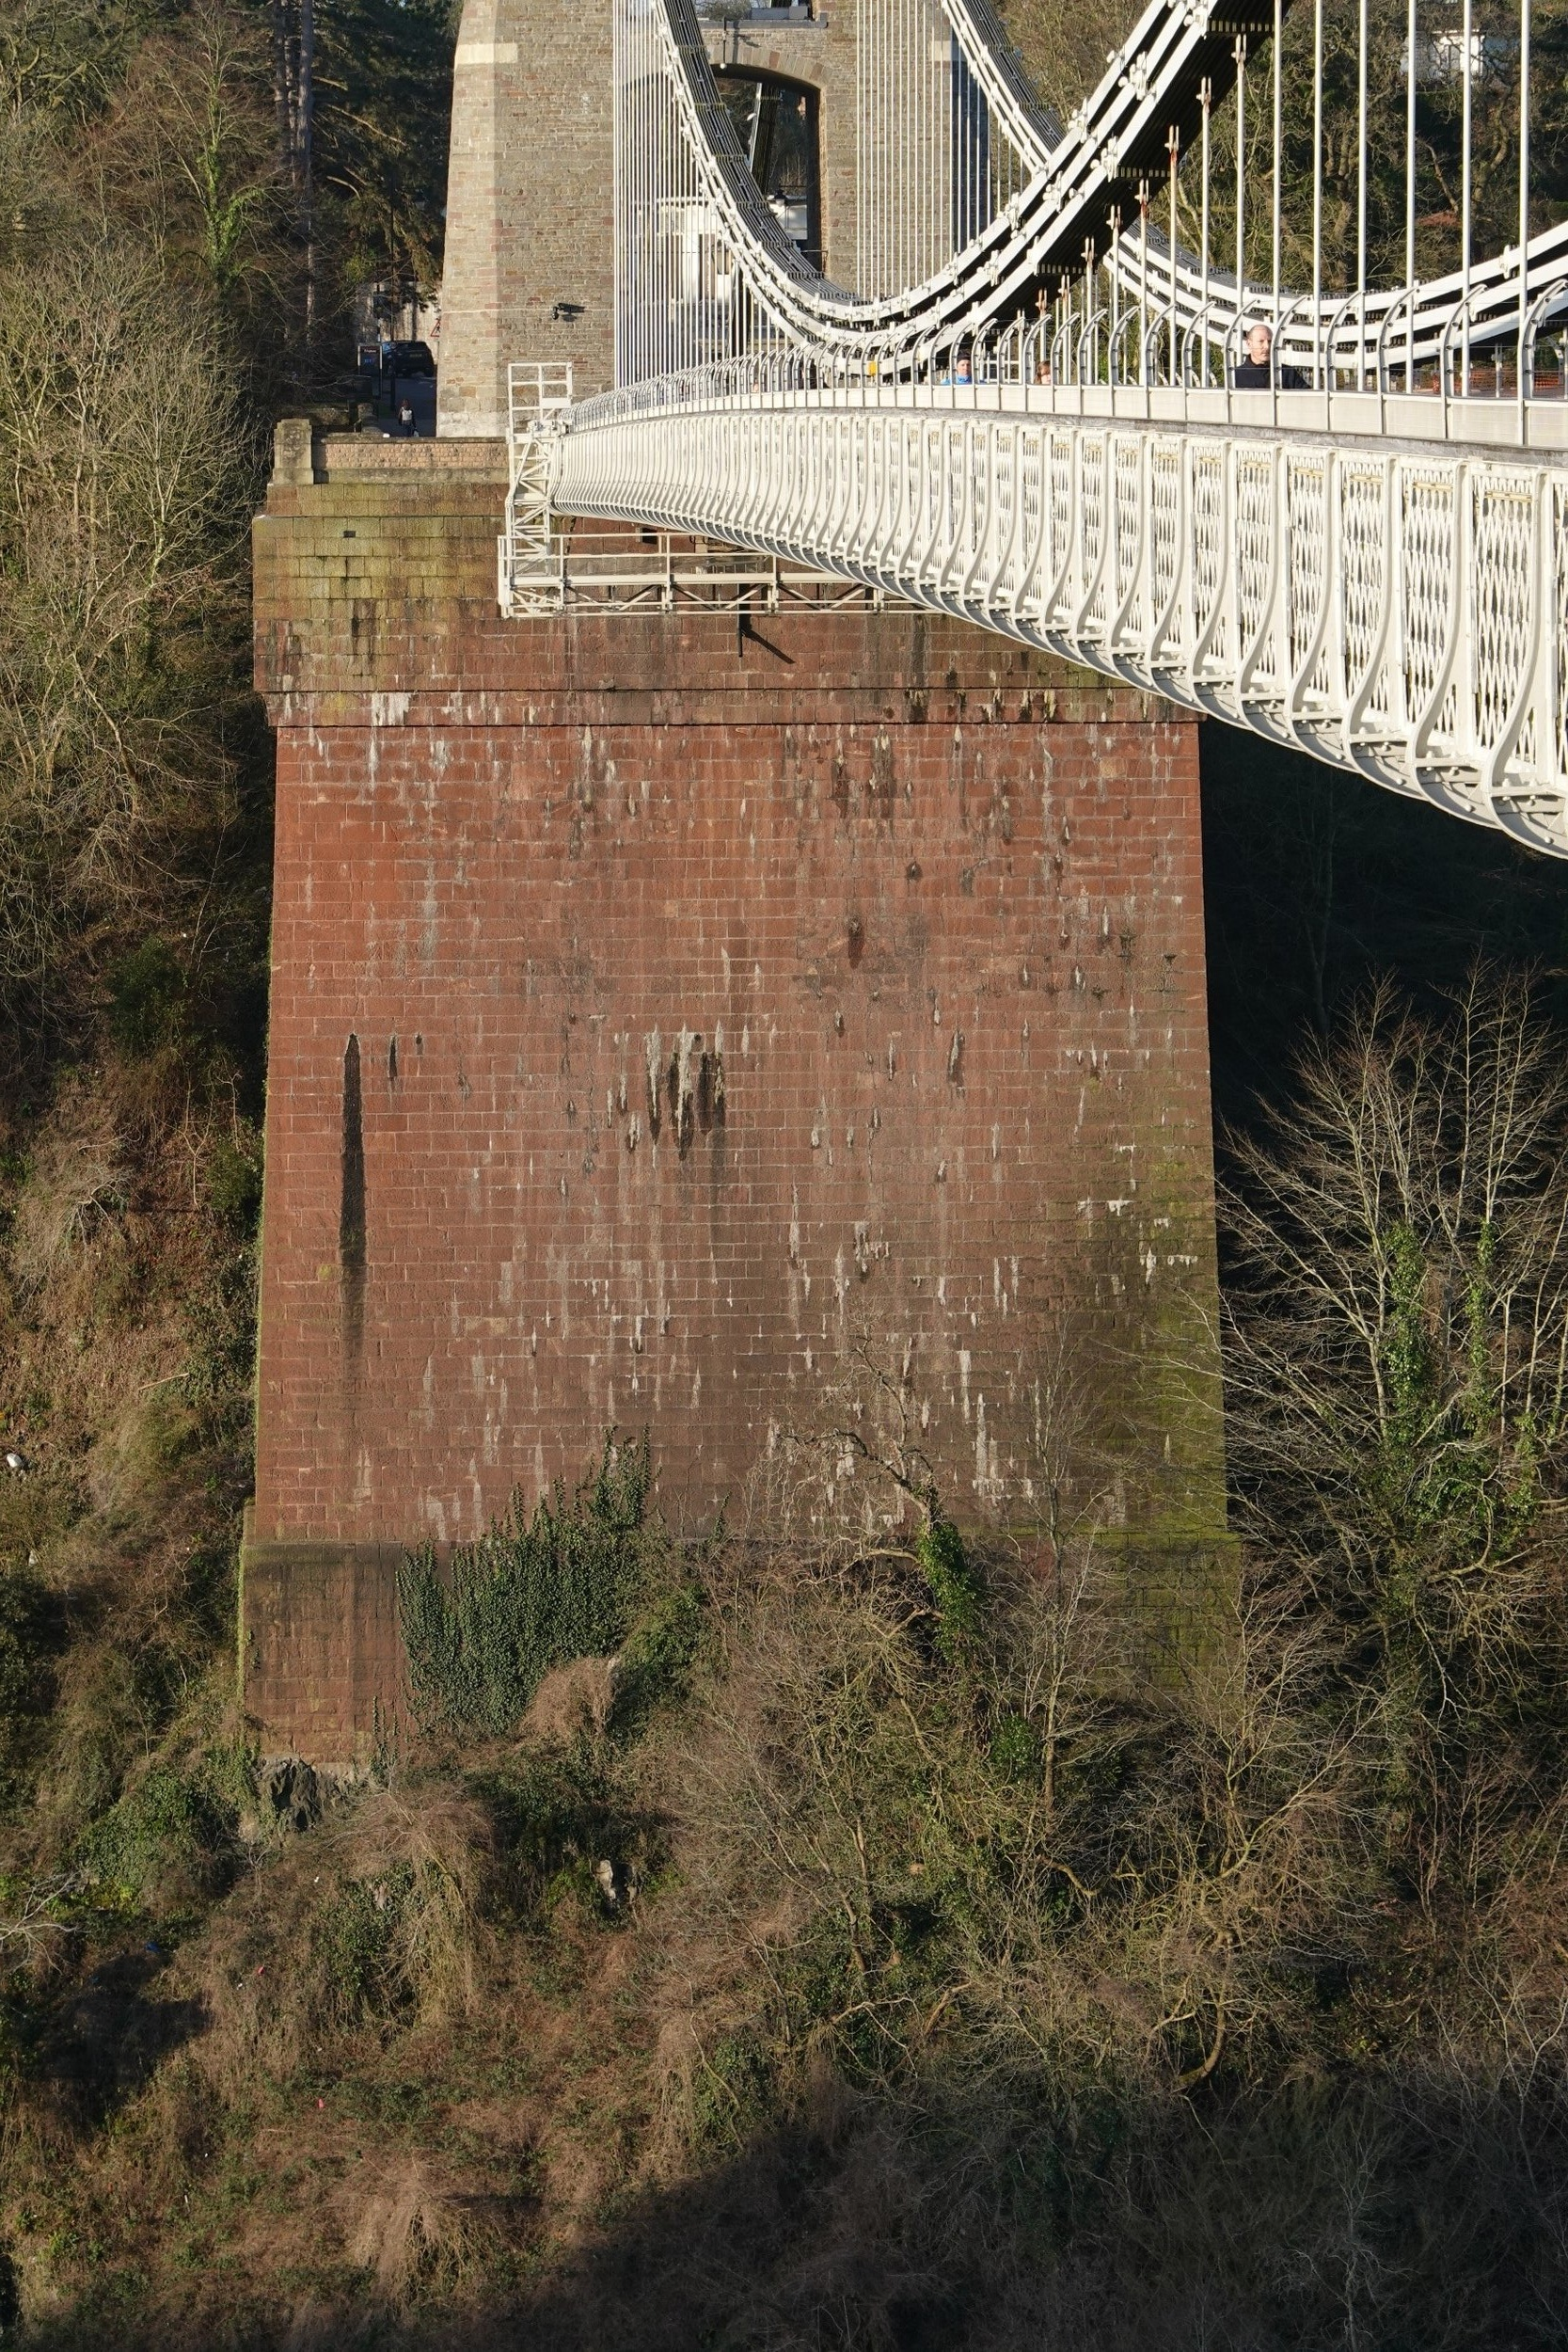 Figure 2 The gorge face of the Leigh Woods pier